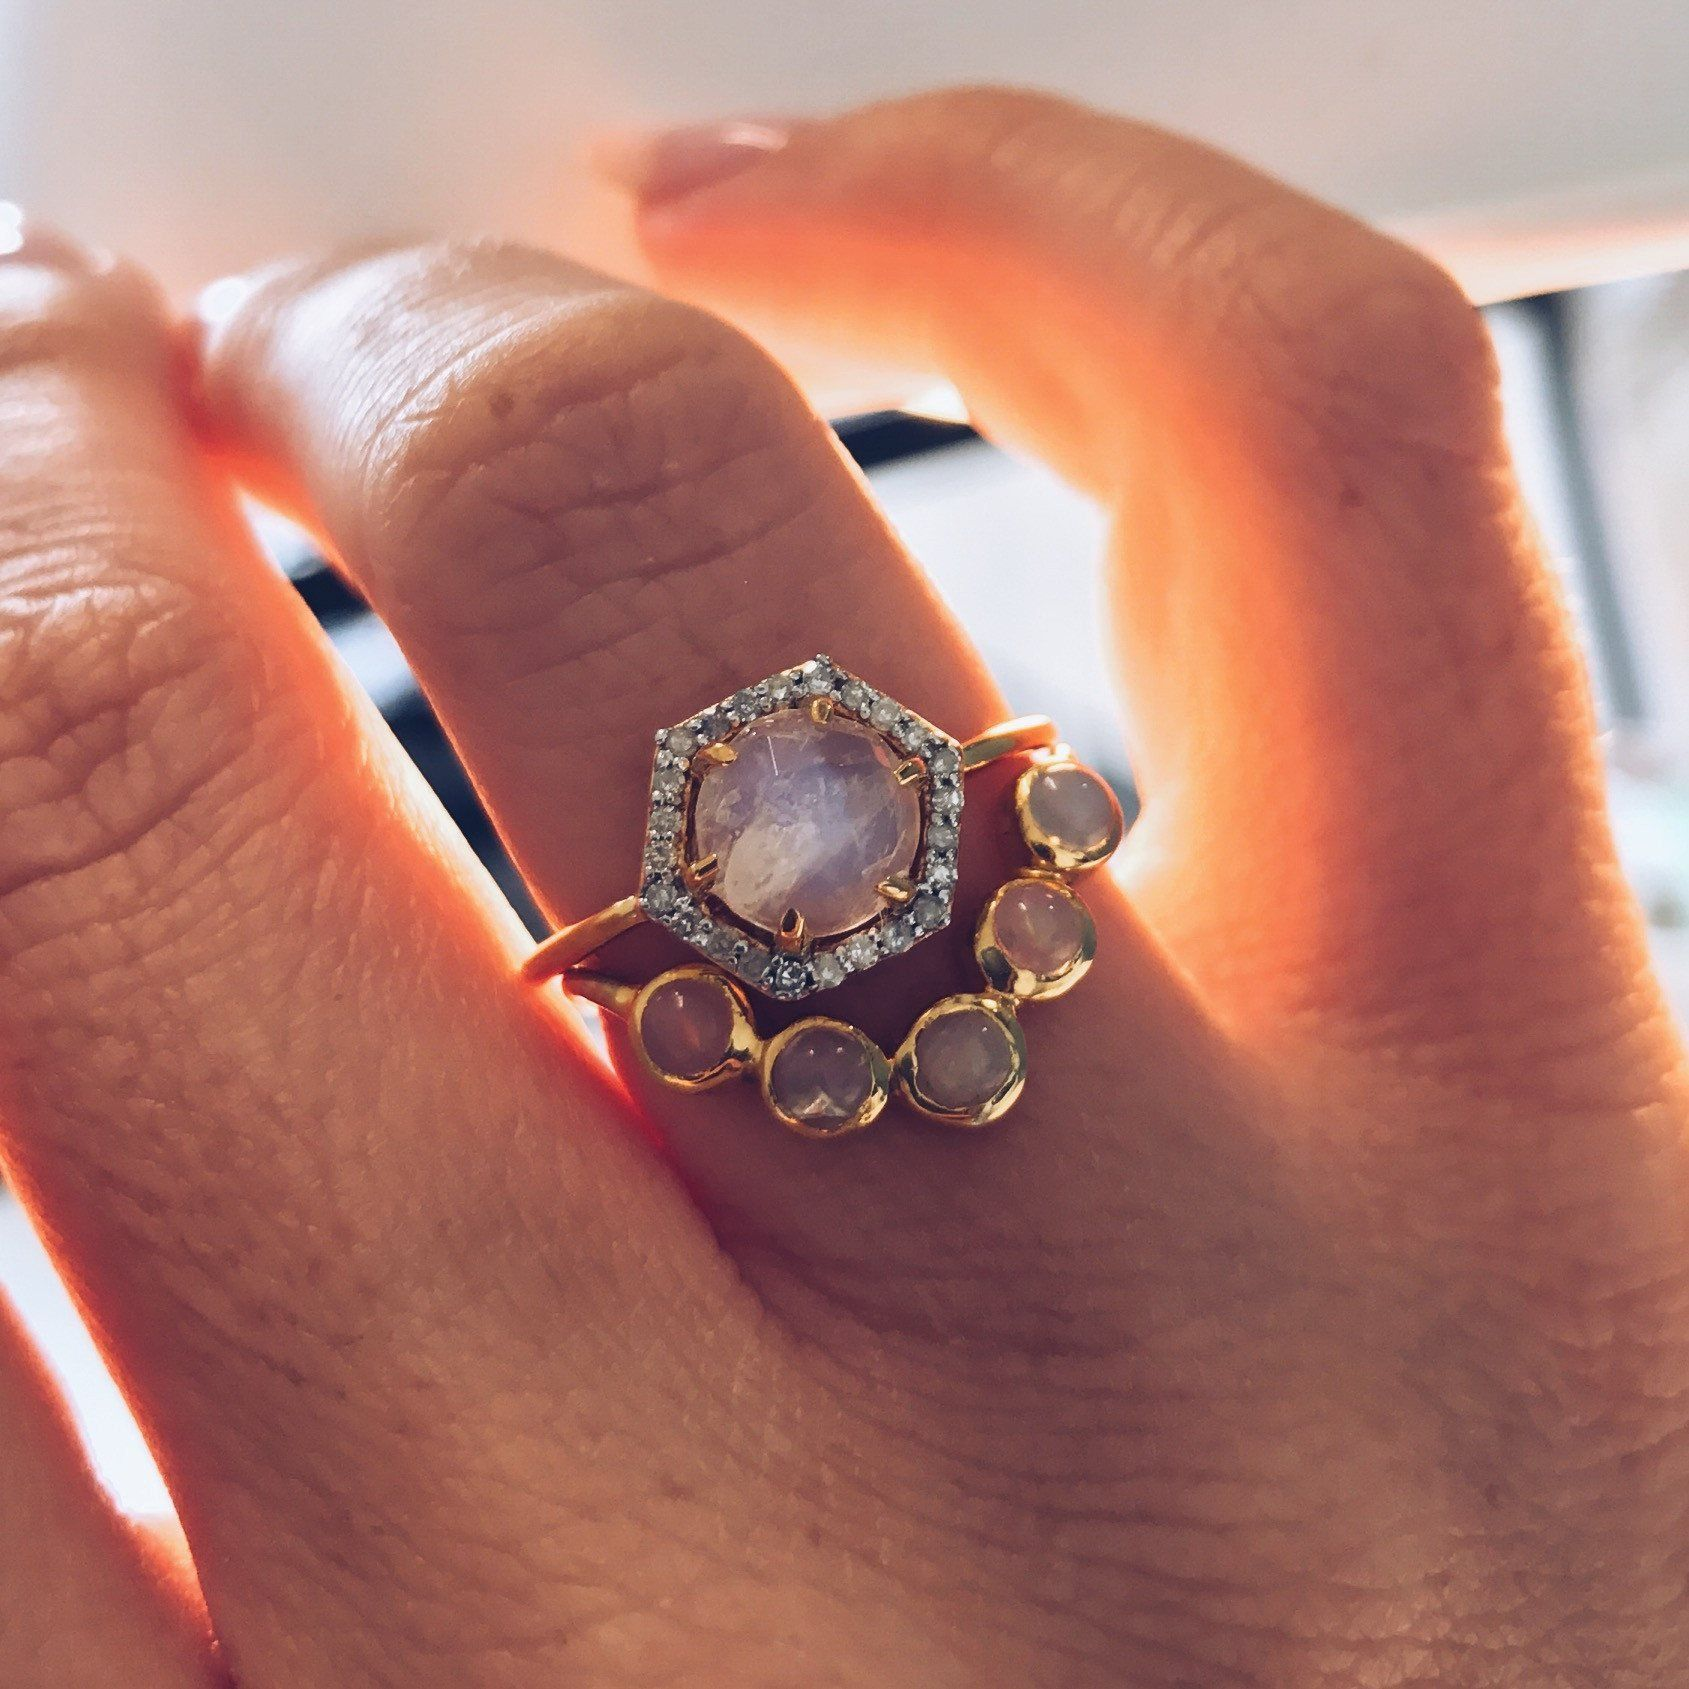 local eclectic To Have & To Hold (Half Halo Opal Ring